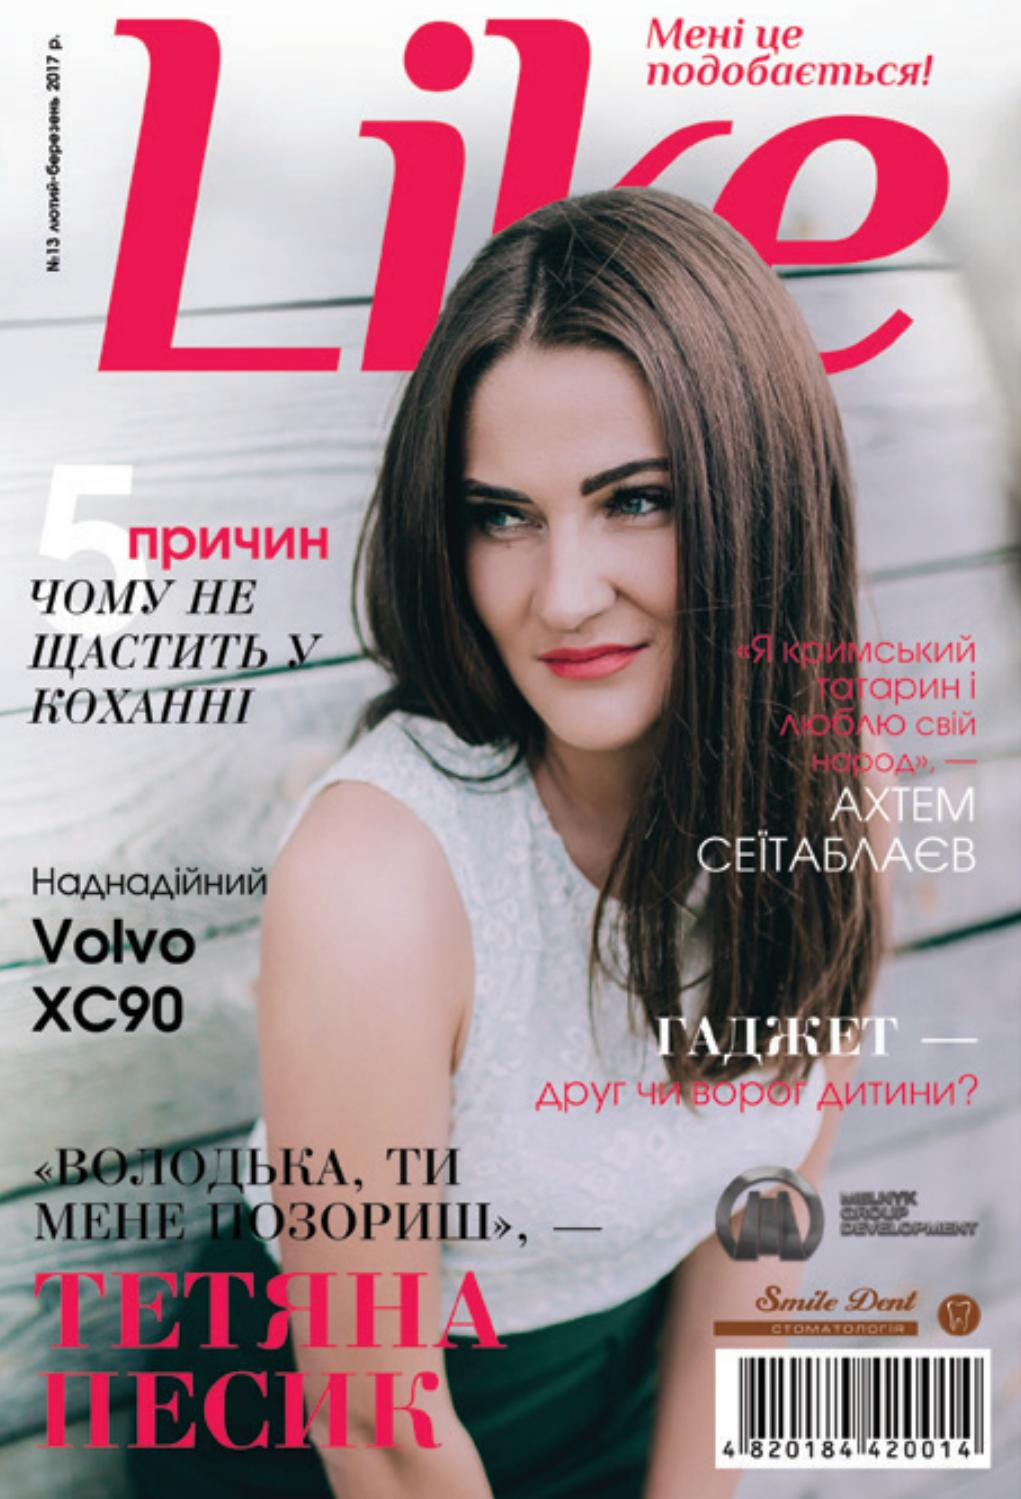 Like №13 by Andrew Porhunovskiy - issuu f5db88aeb07f1